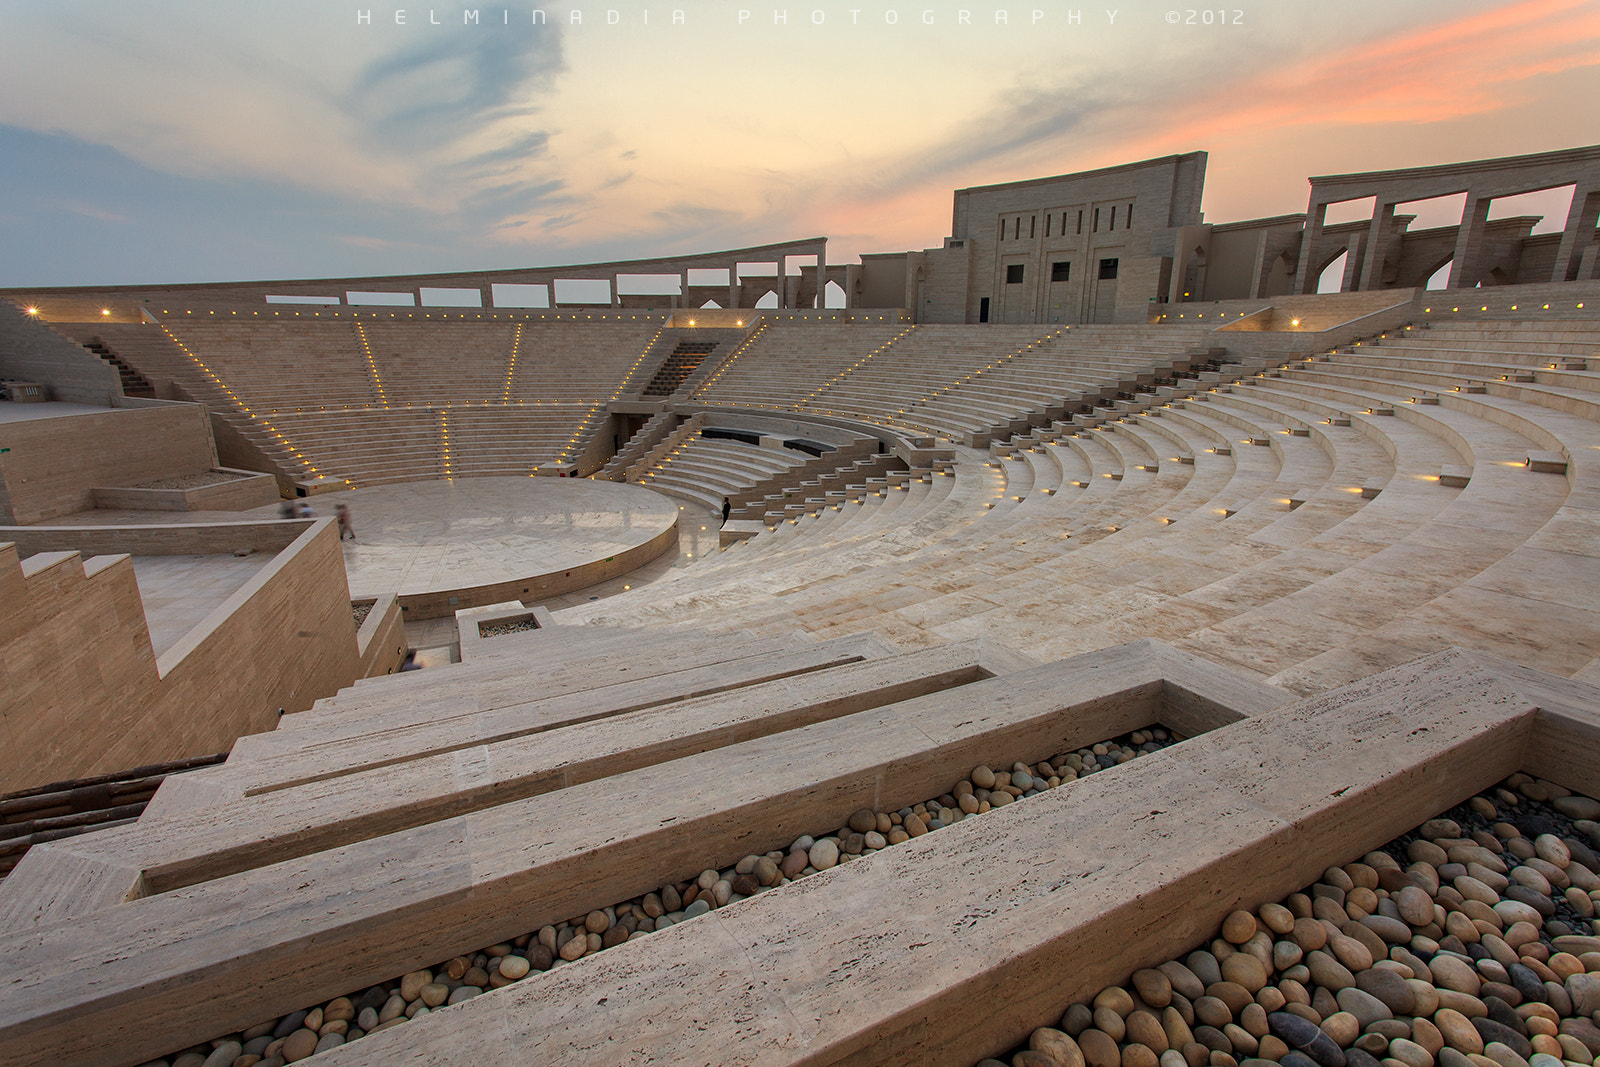 Photograph Katara Amphitheater by Helminadia Ranford on 500px